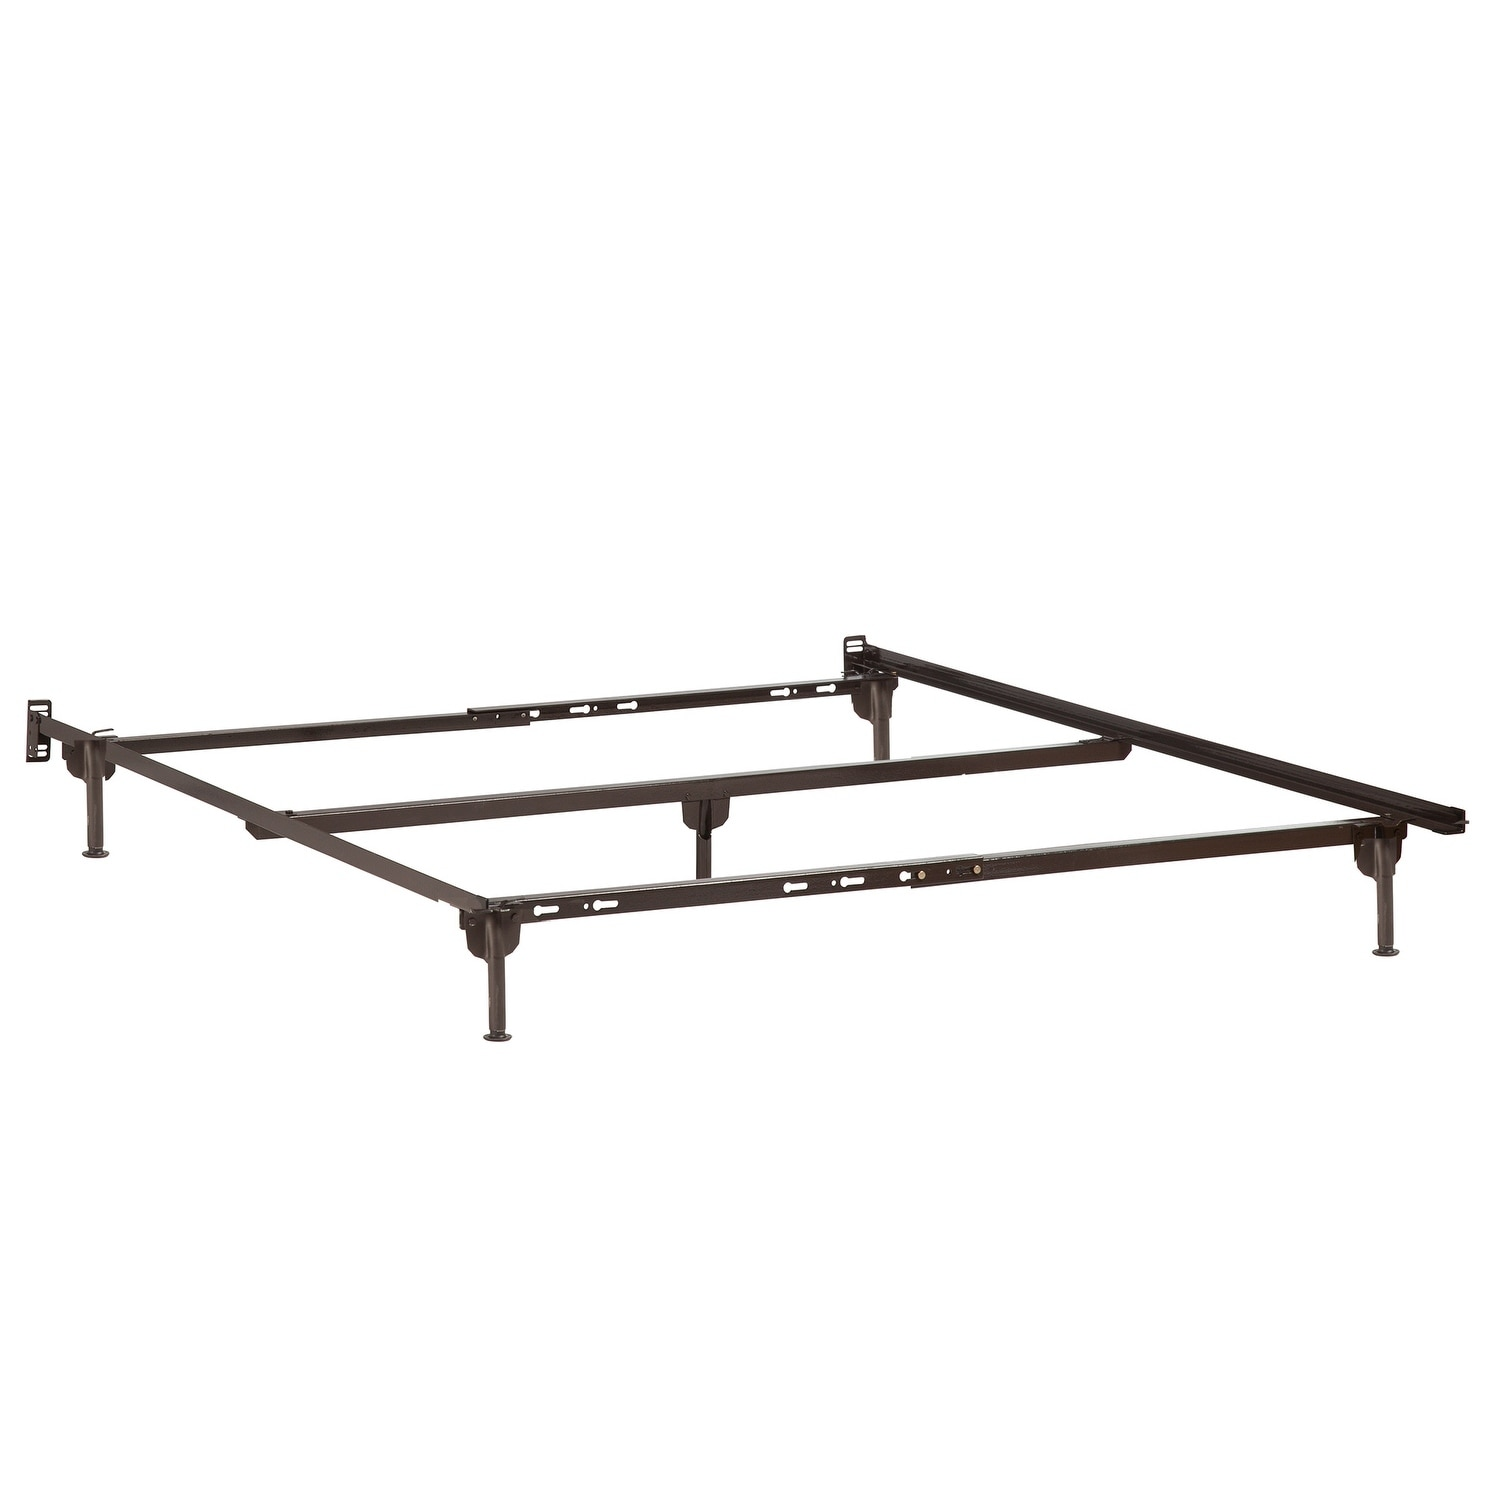 Atlantic Furniture Metal Twin Xl Full Queen Bed Frame With Glides Free Shipping Today 26452000